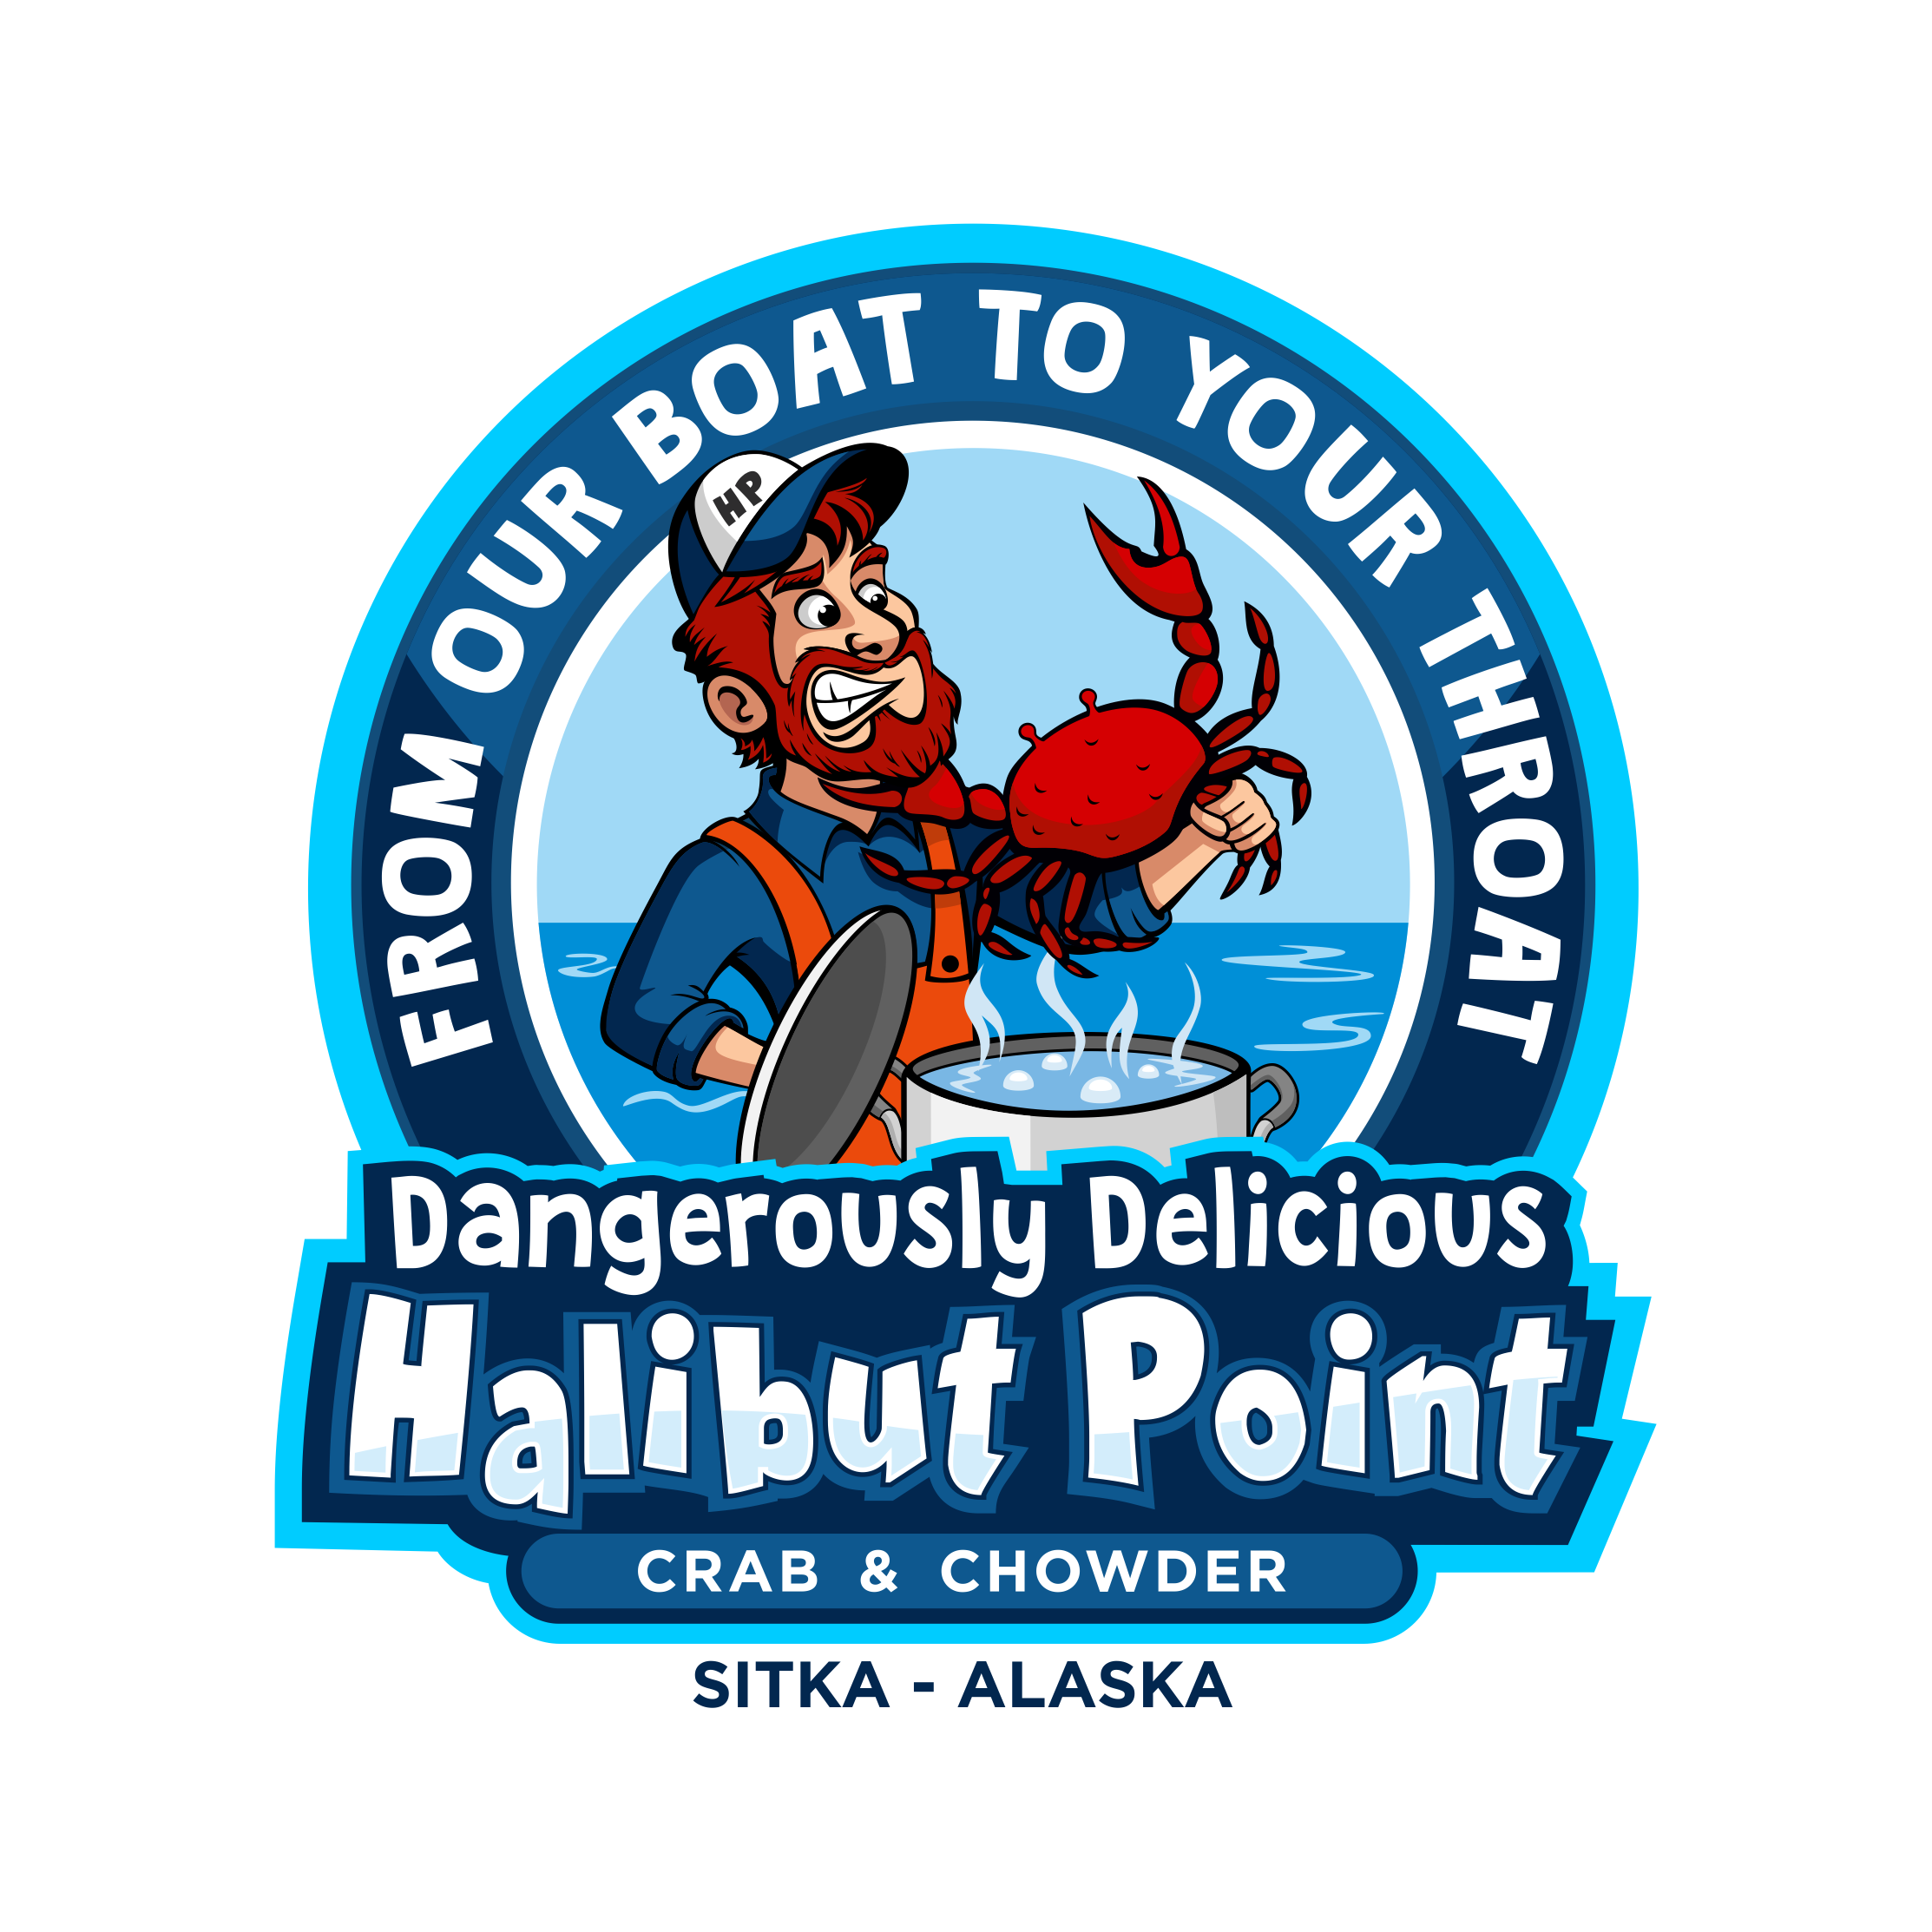 From our boat to your throat! Crab vs Fisherman logo for our seafood company that tourists will love